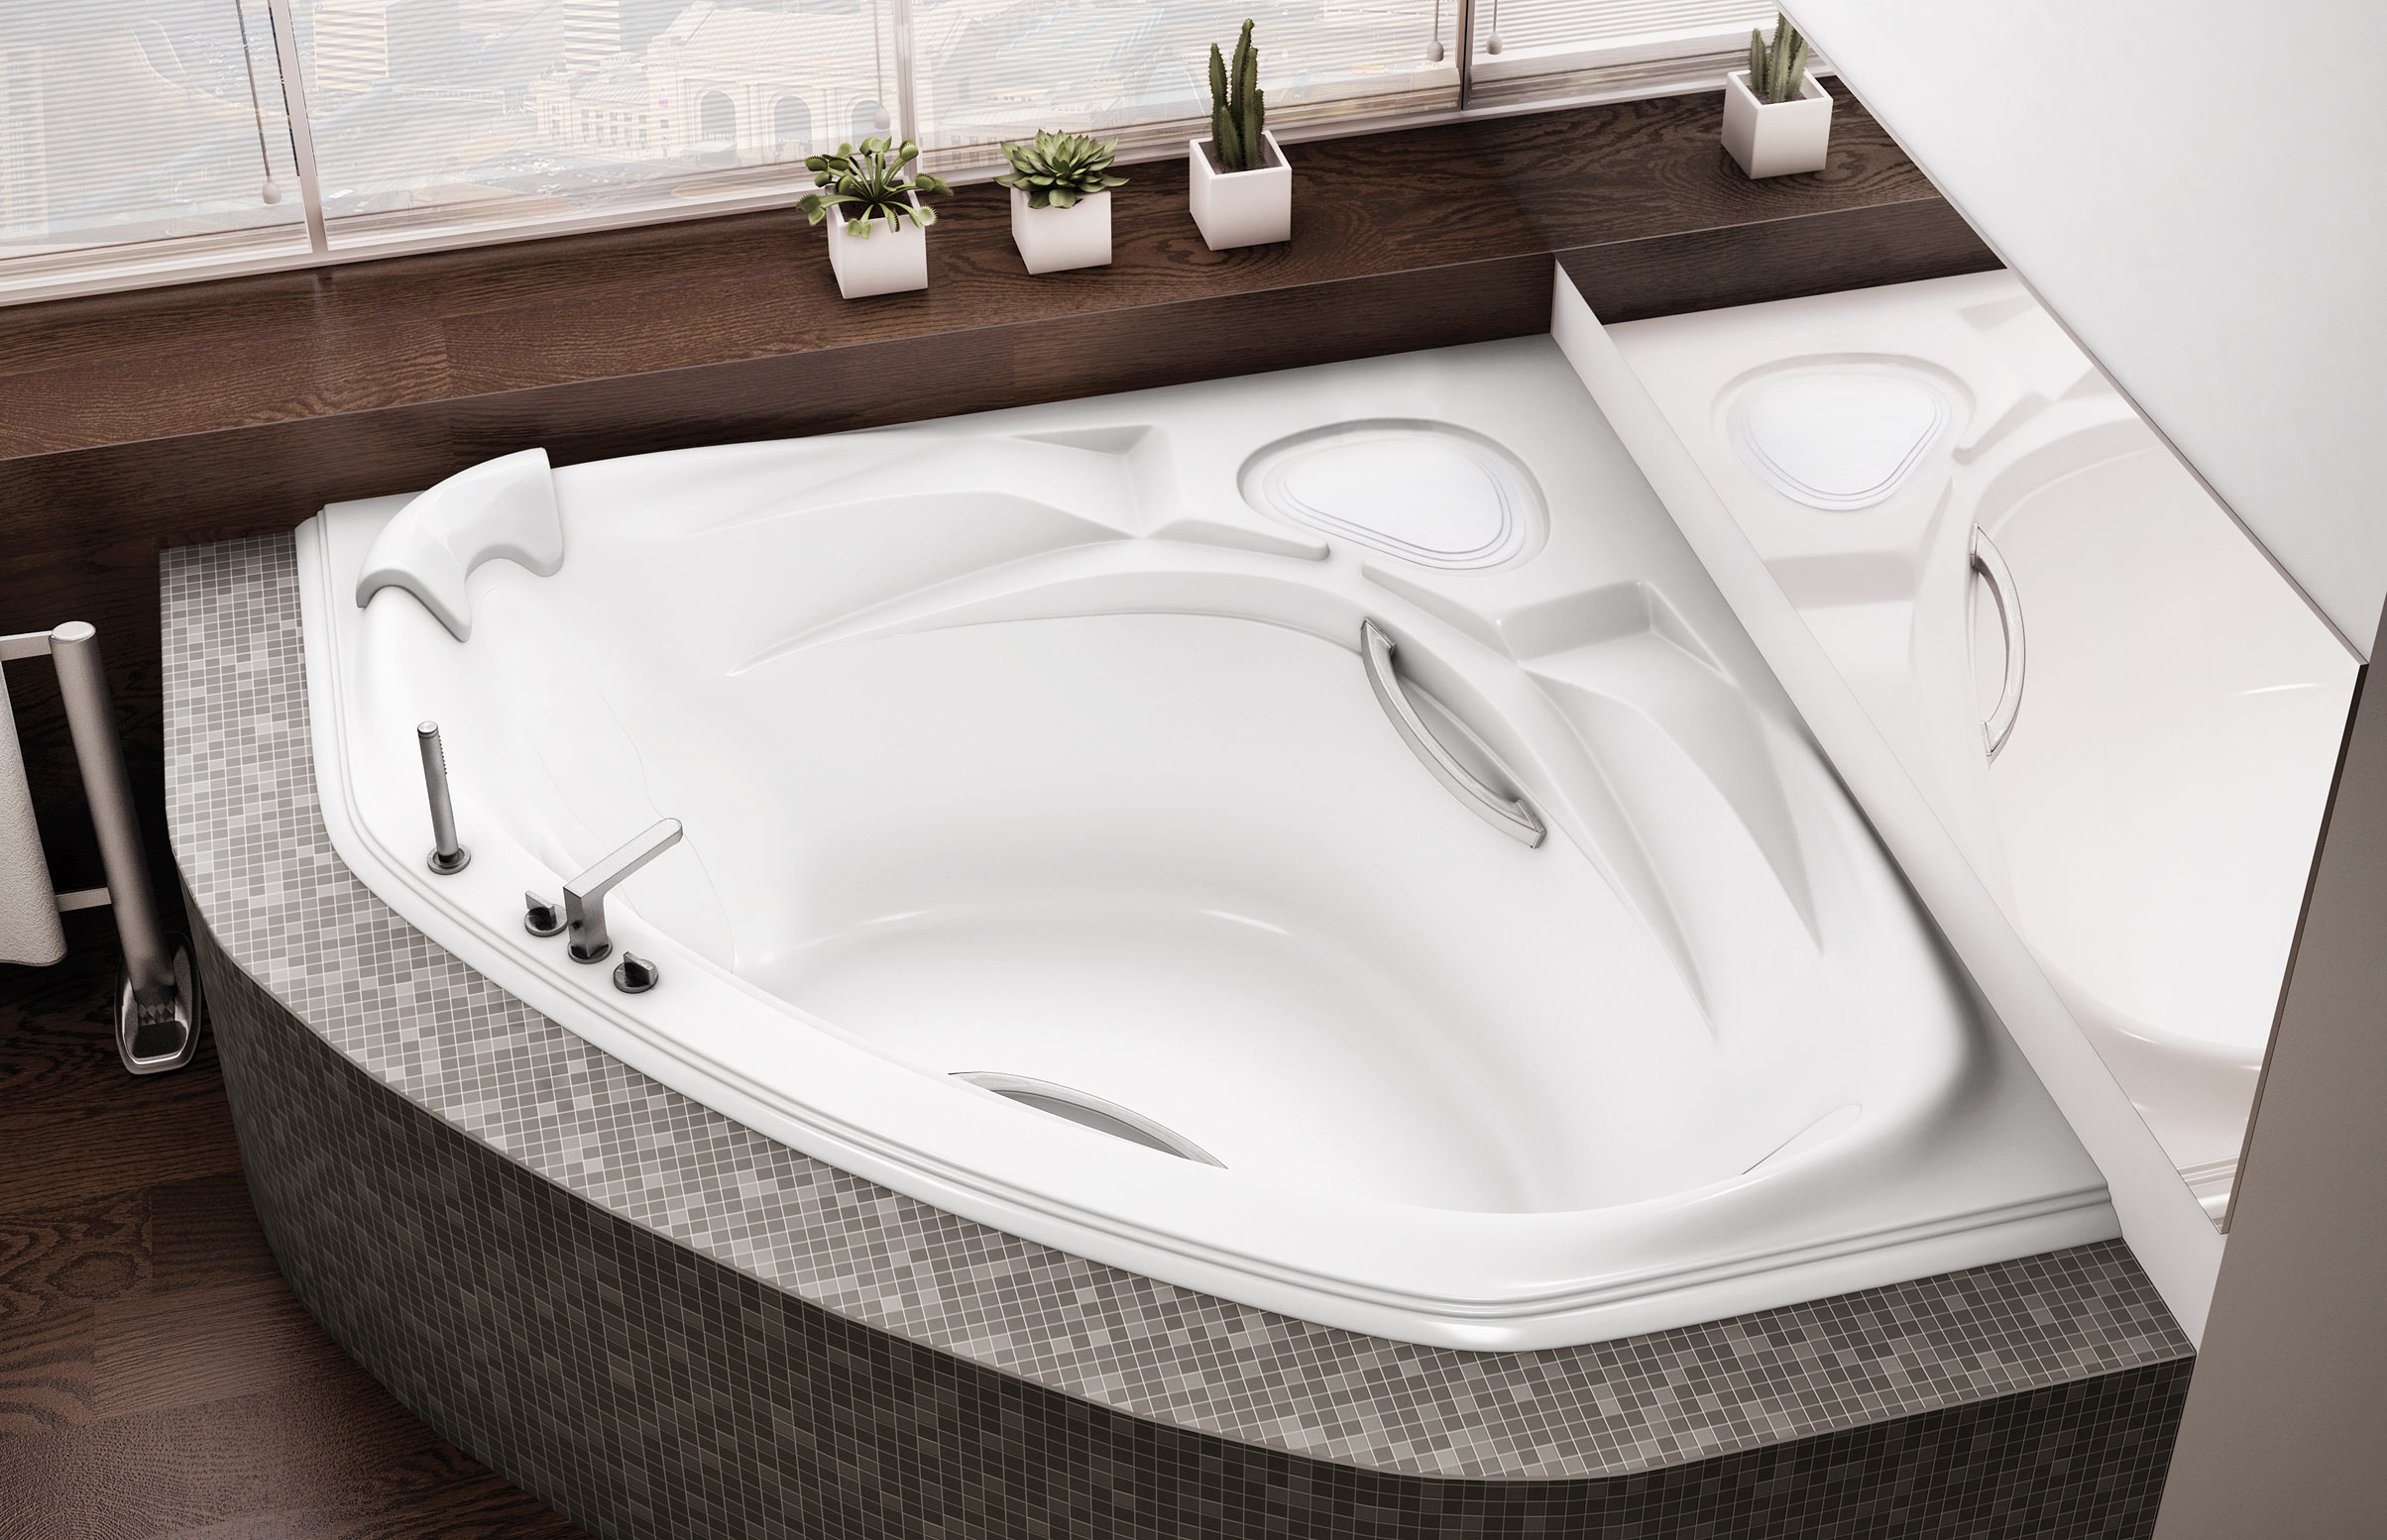 Beautiful Maax Jetted Tubs Image - Bathroom and Shower Ideas ...